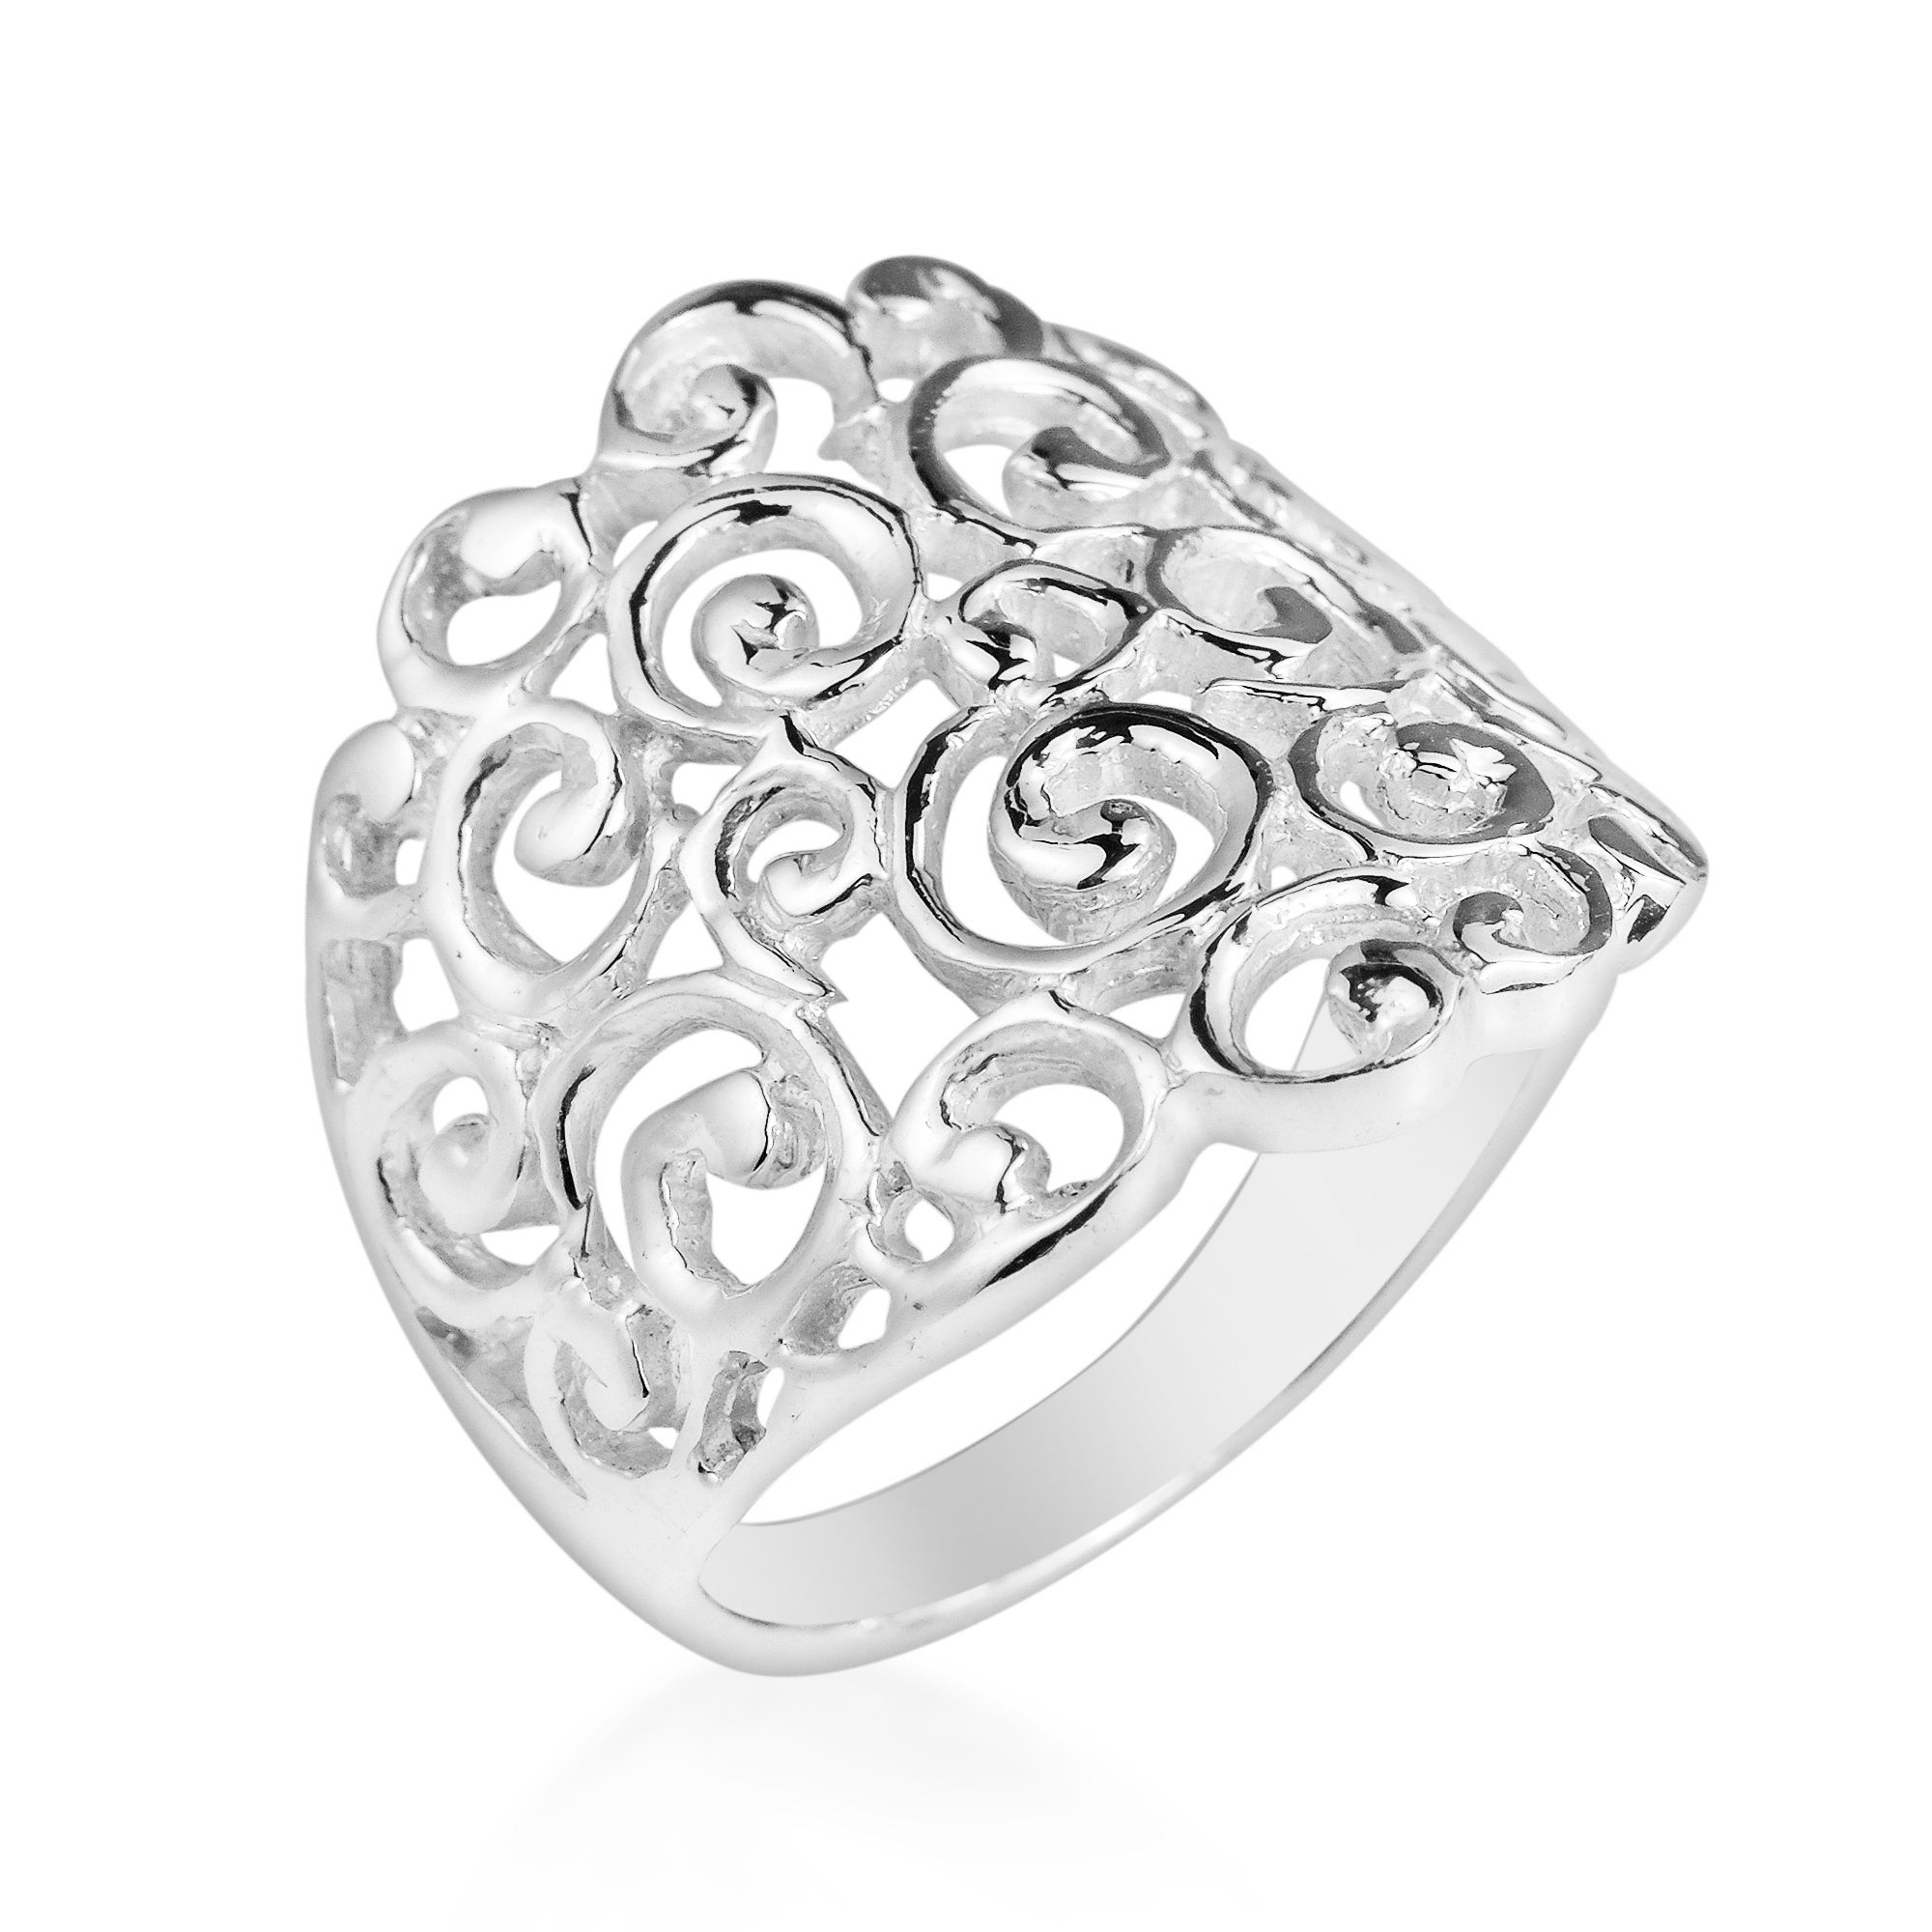 Overstock.com Clustered Spirals and Swirls Front Sterling Silver Ring (Thailand) at Sears.com